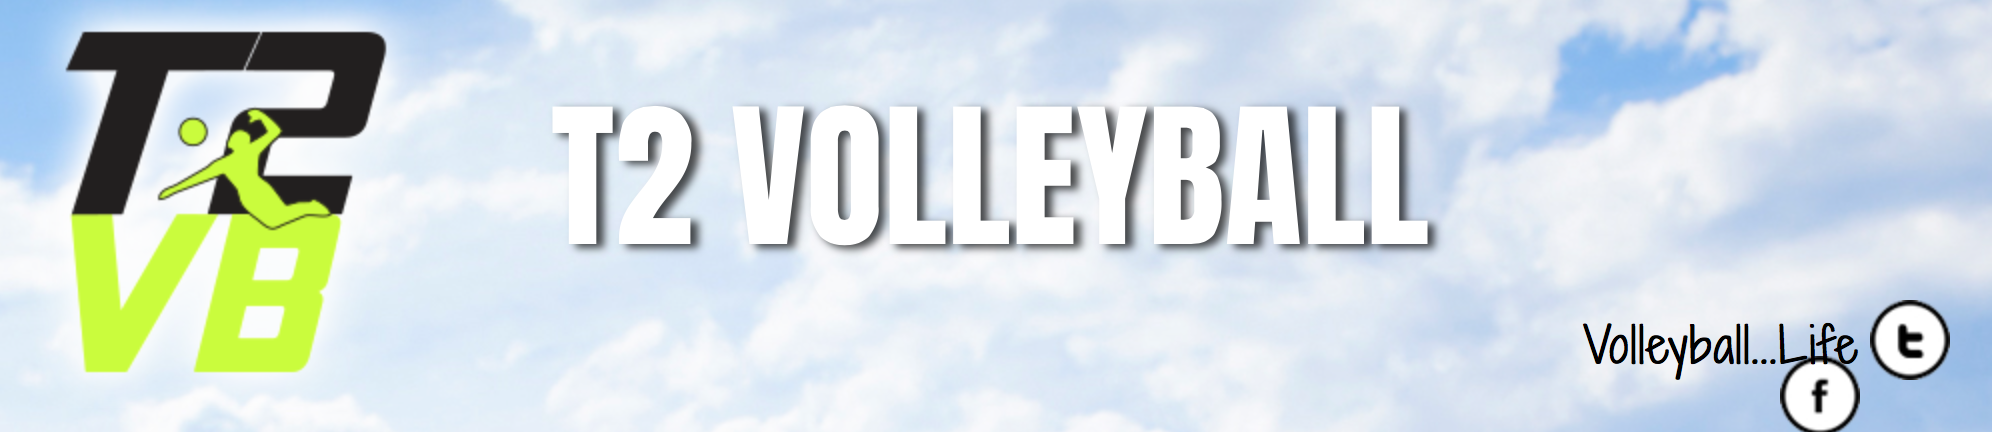 T2vb banner website